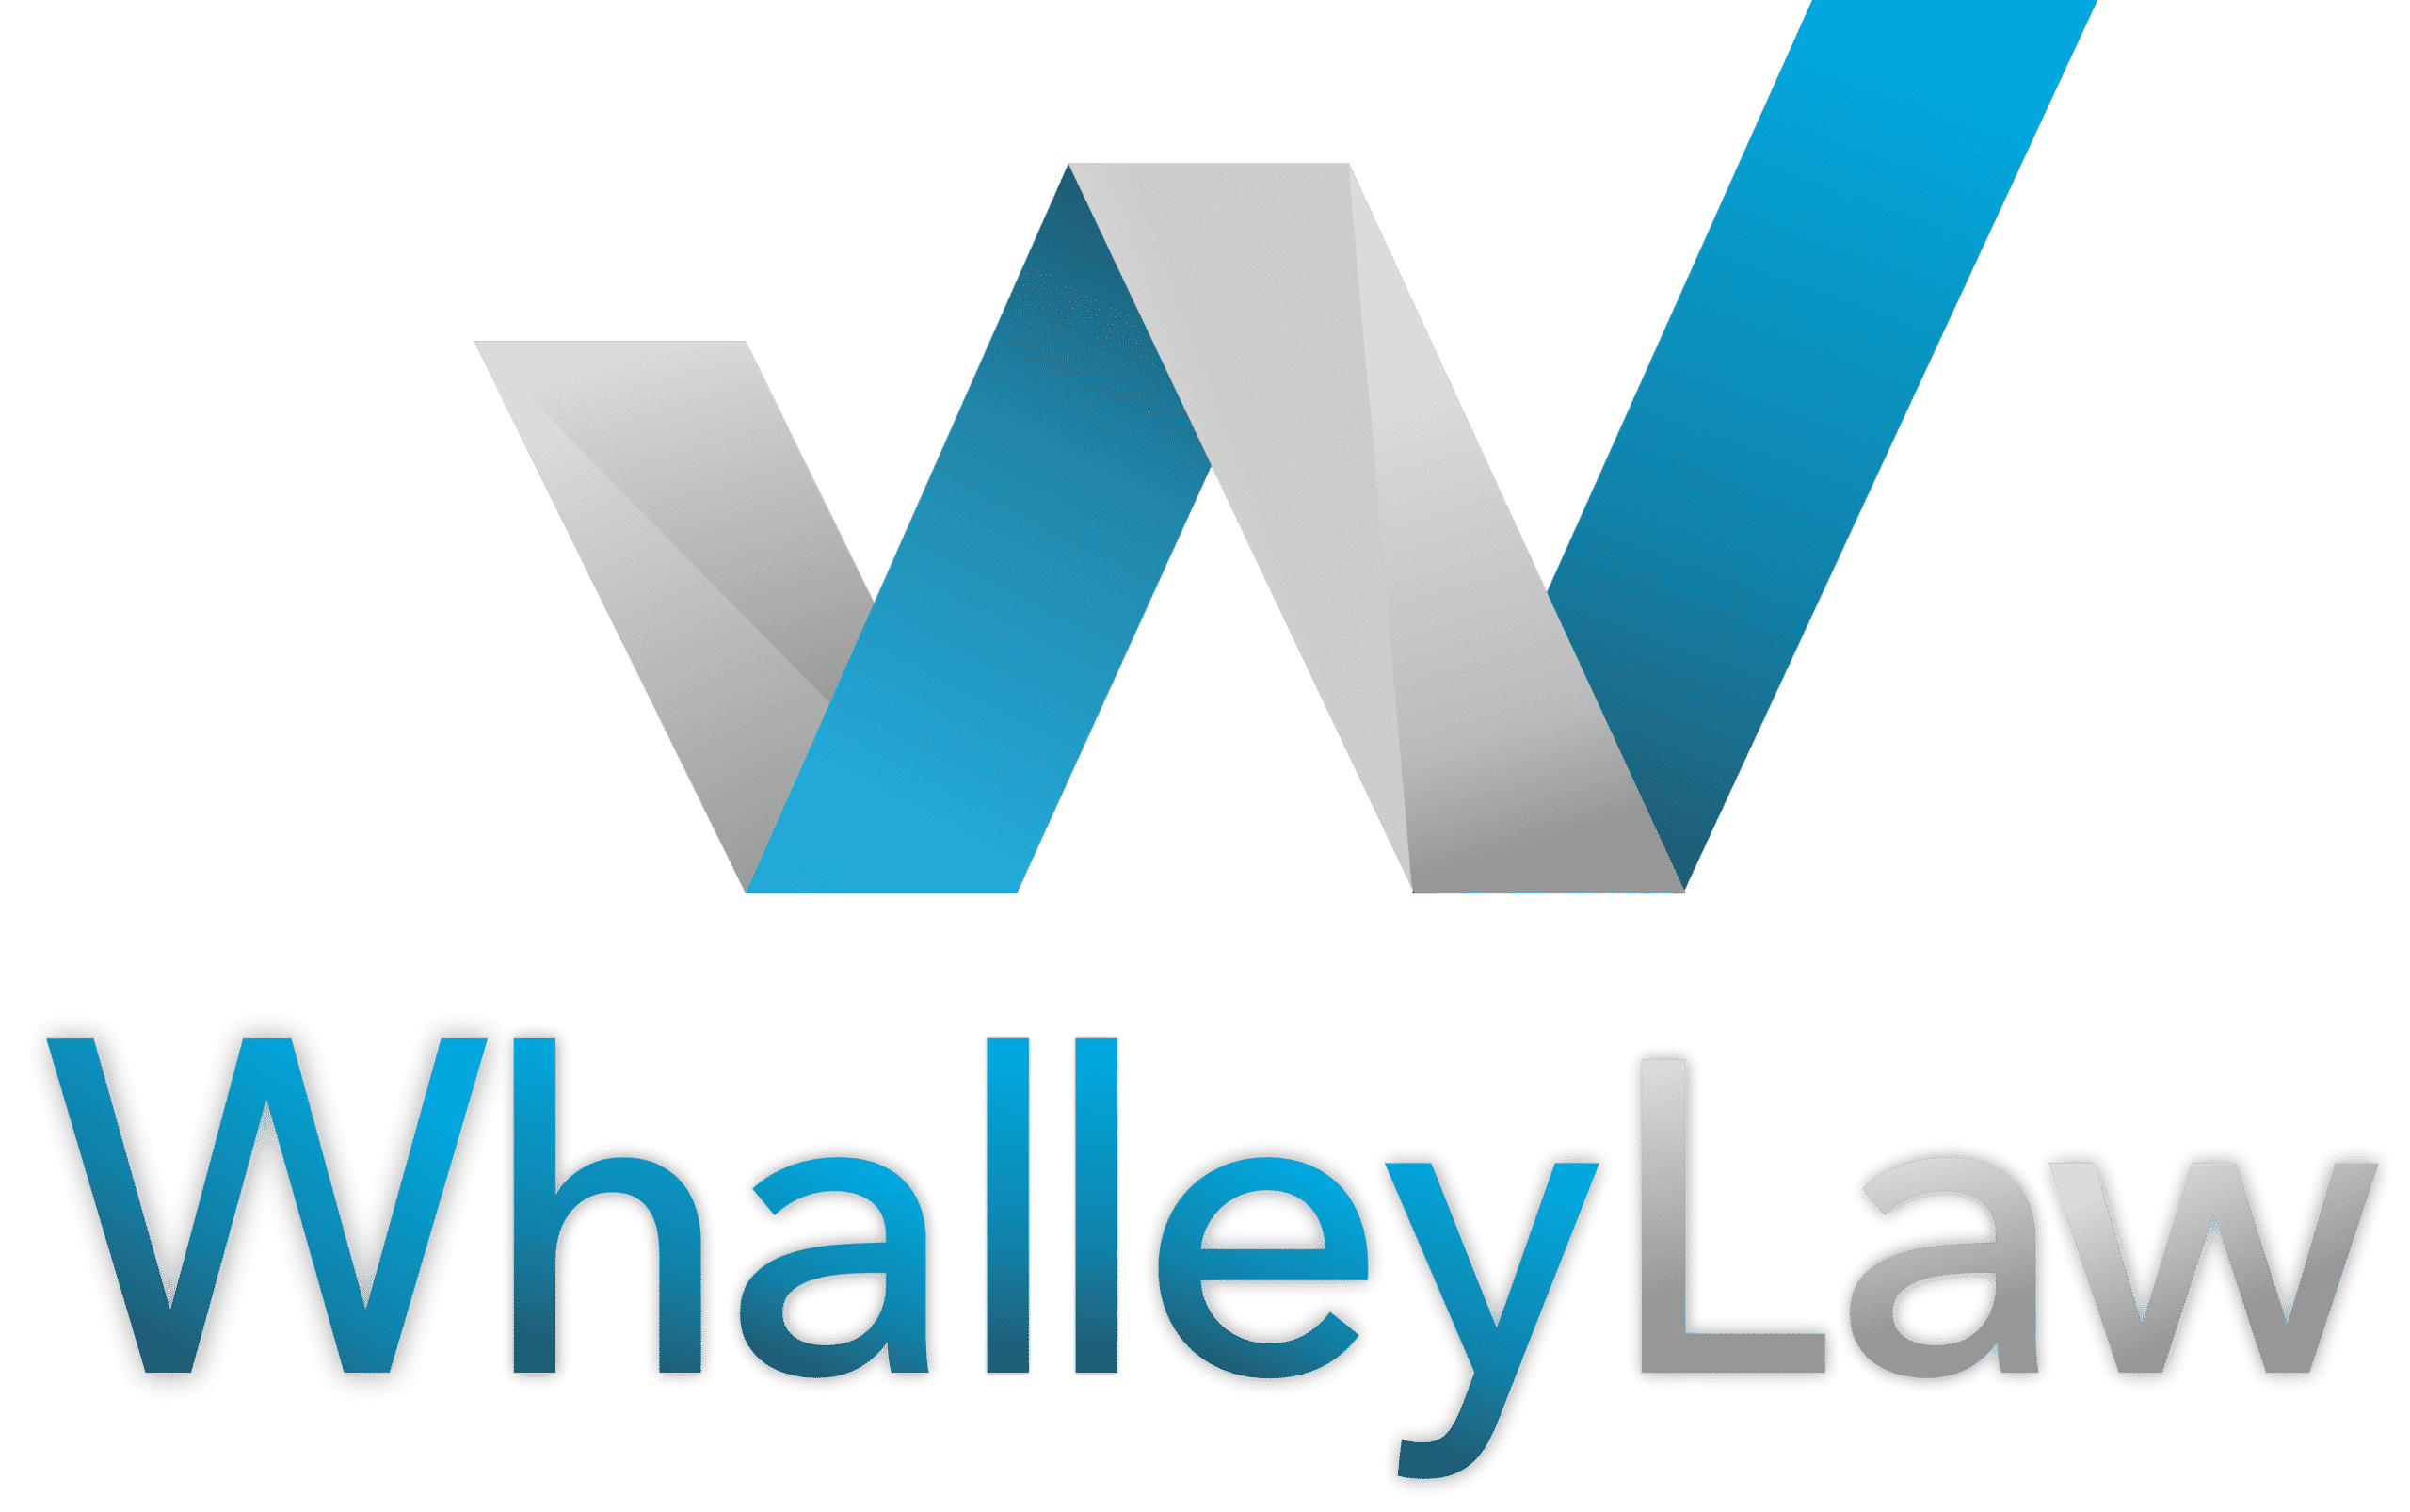 Family Law Firm Washington Whalley Law